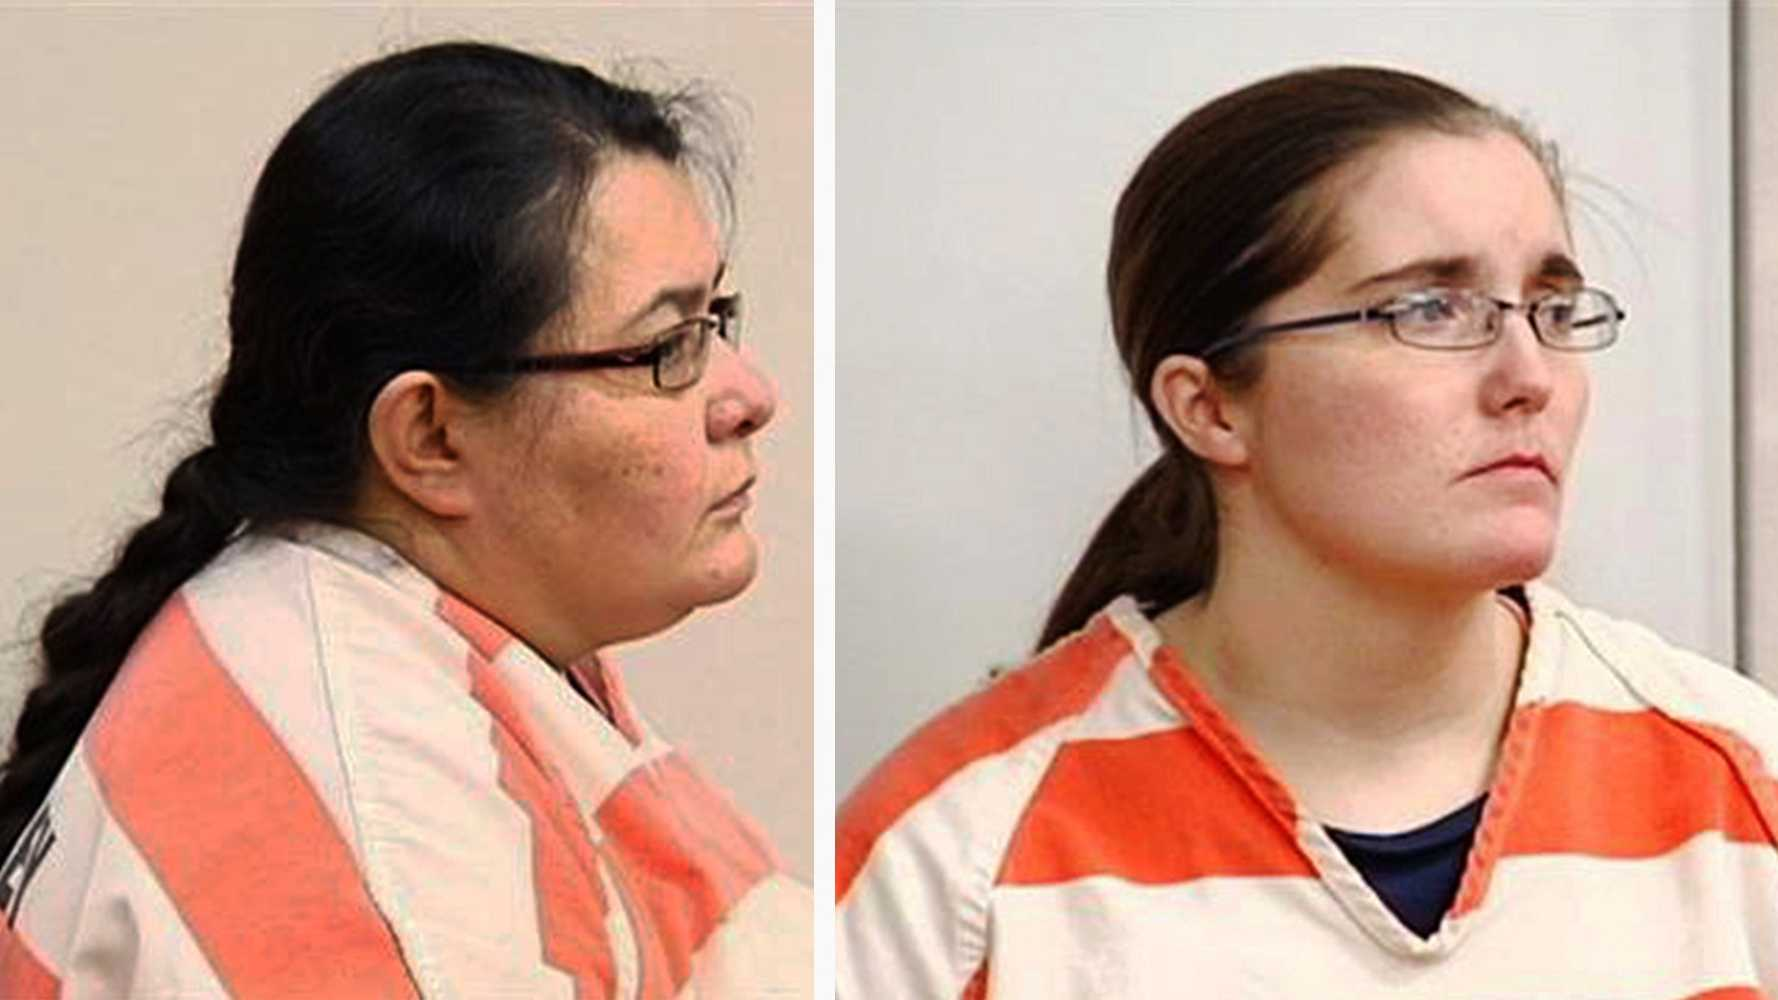 Christian Jessica Deanda, left, and Eraca Dawn Craig, are seen in court on March 26, 2014.